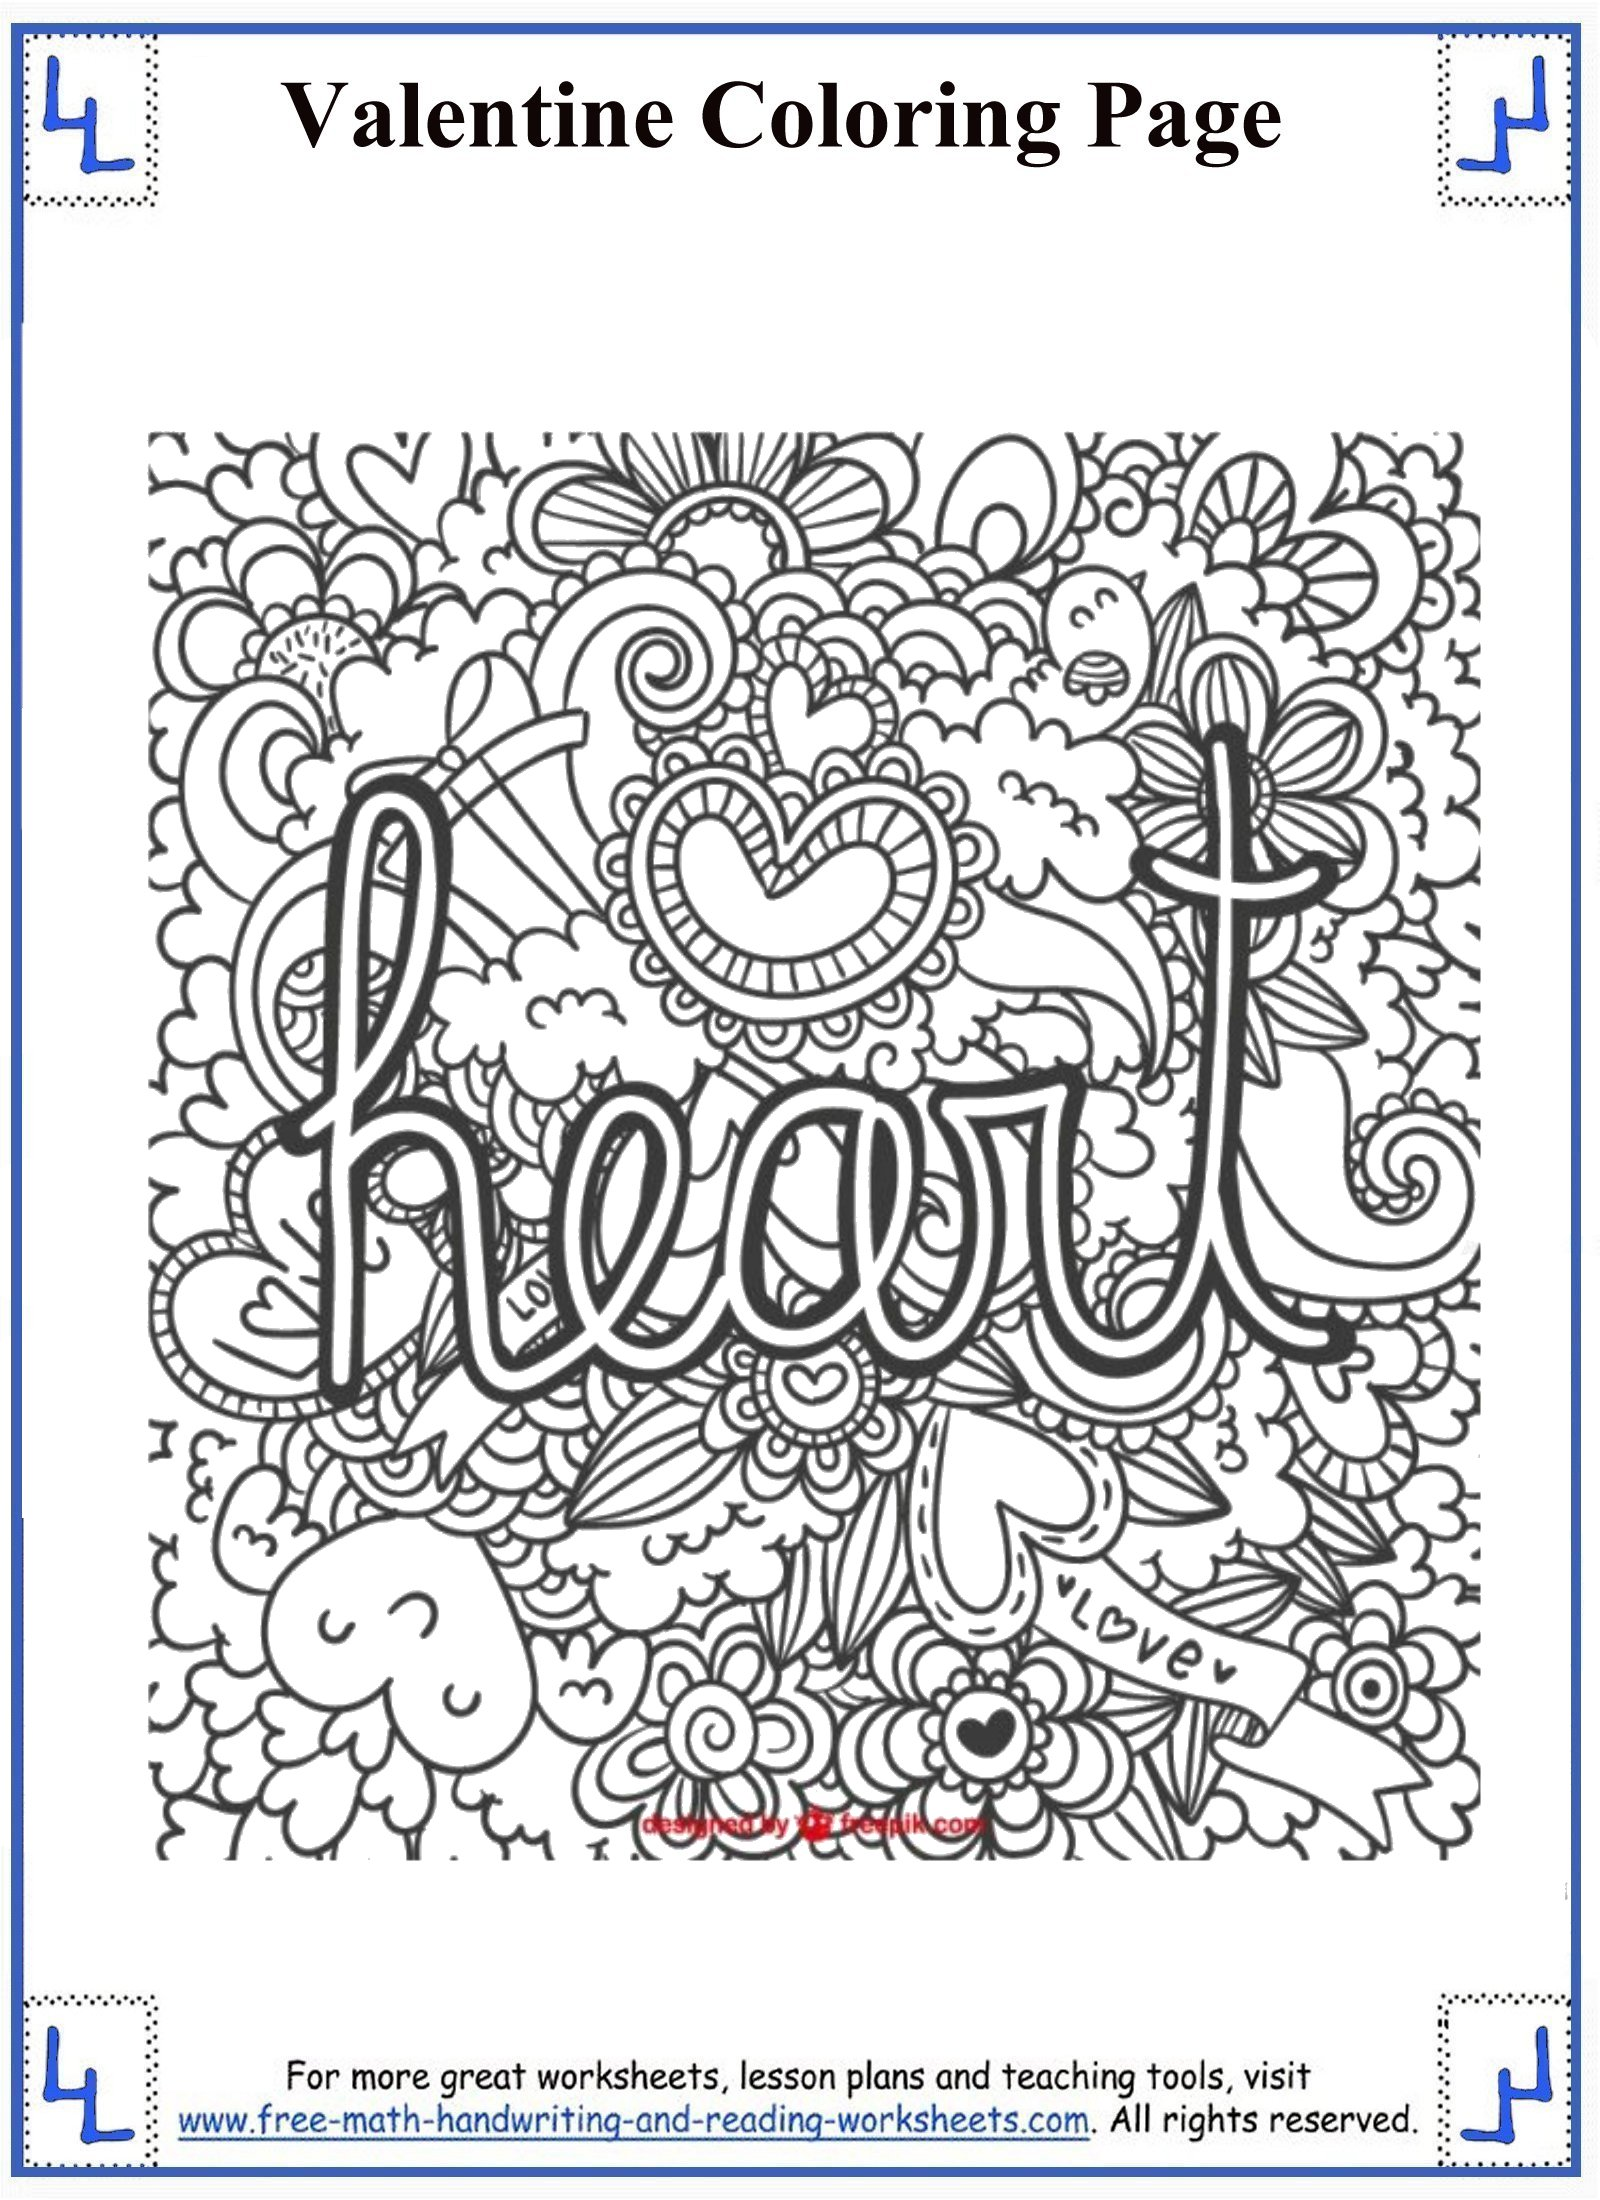 valentine coloring stationary pages - photo#15